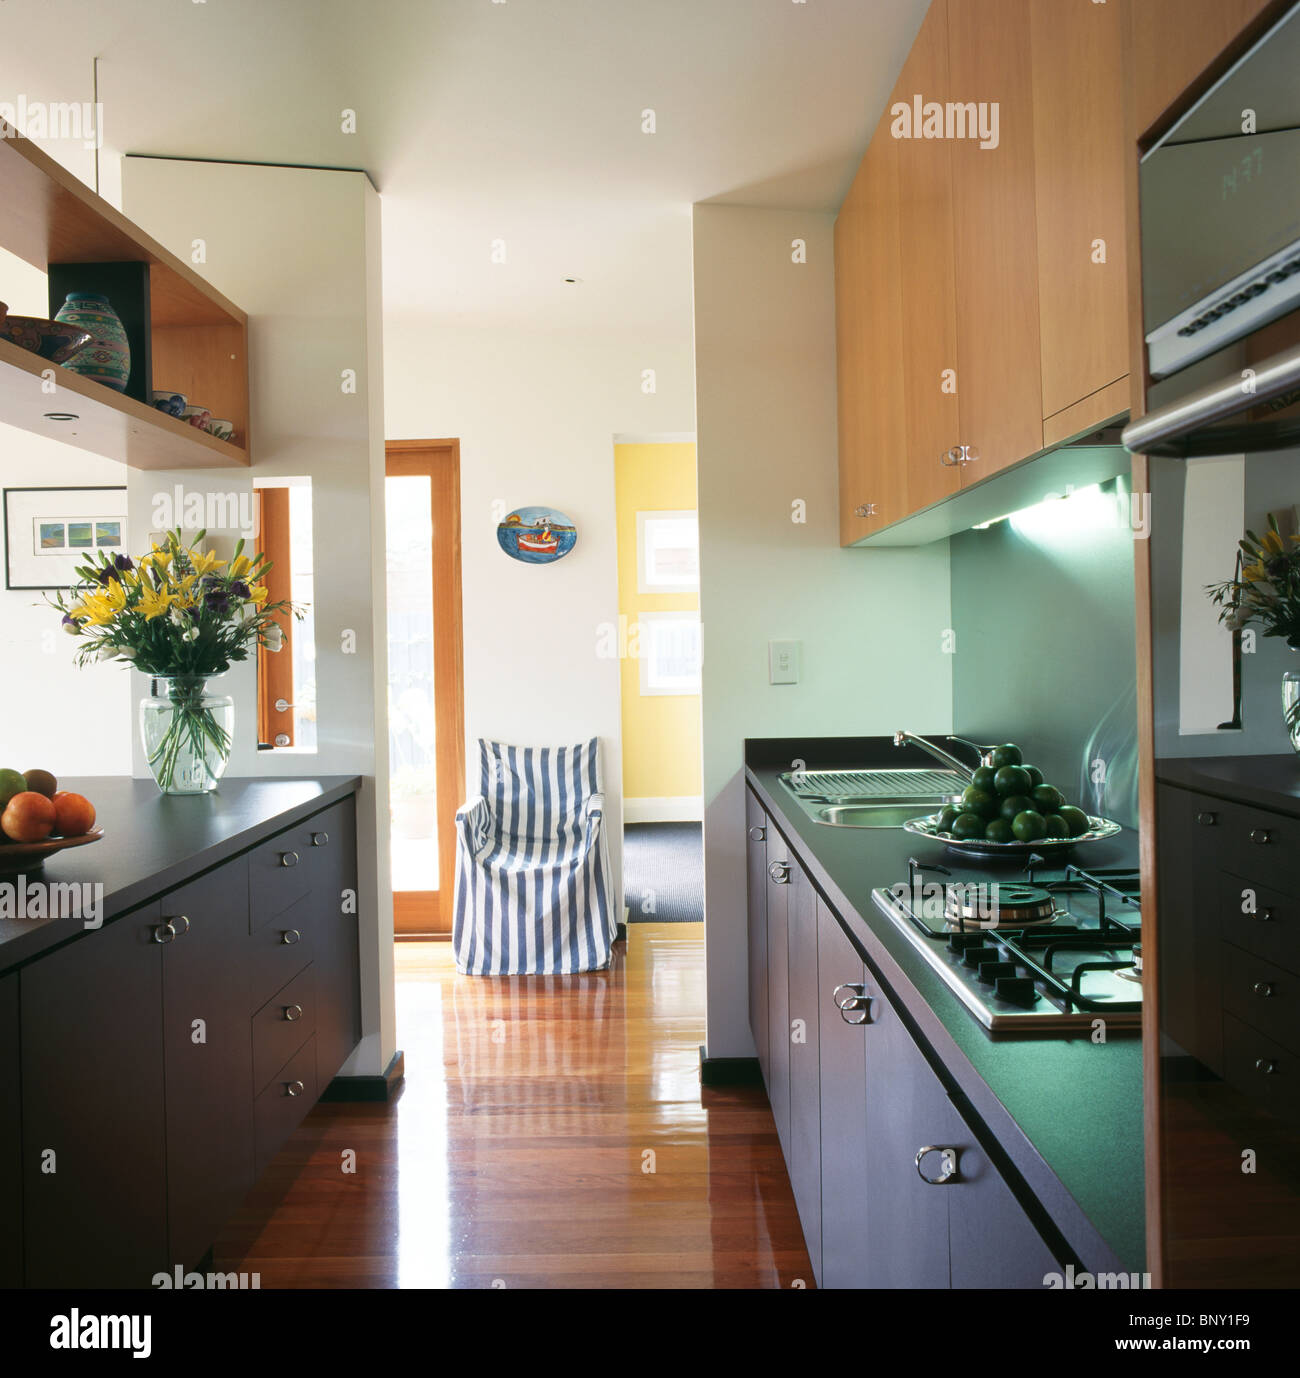 Lighting Above Hob In Fitted Unit In Open-plan Galley